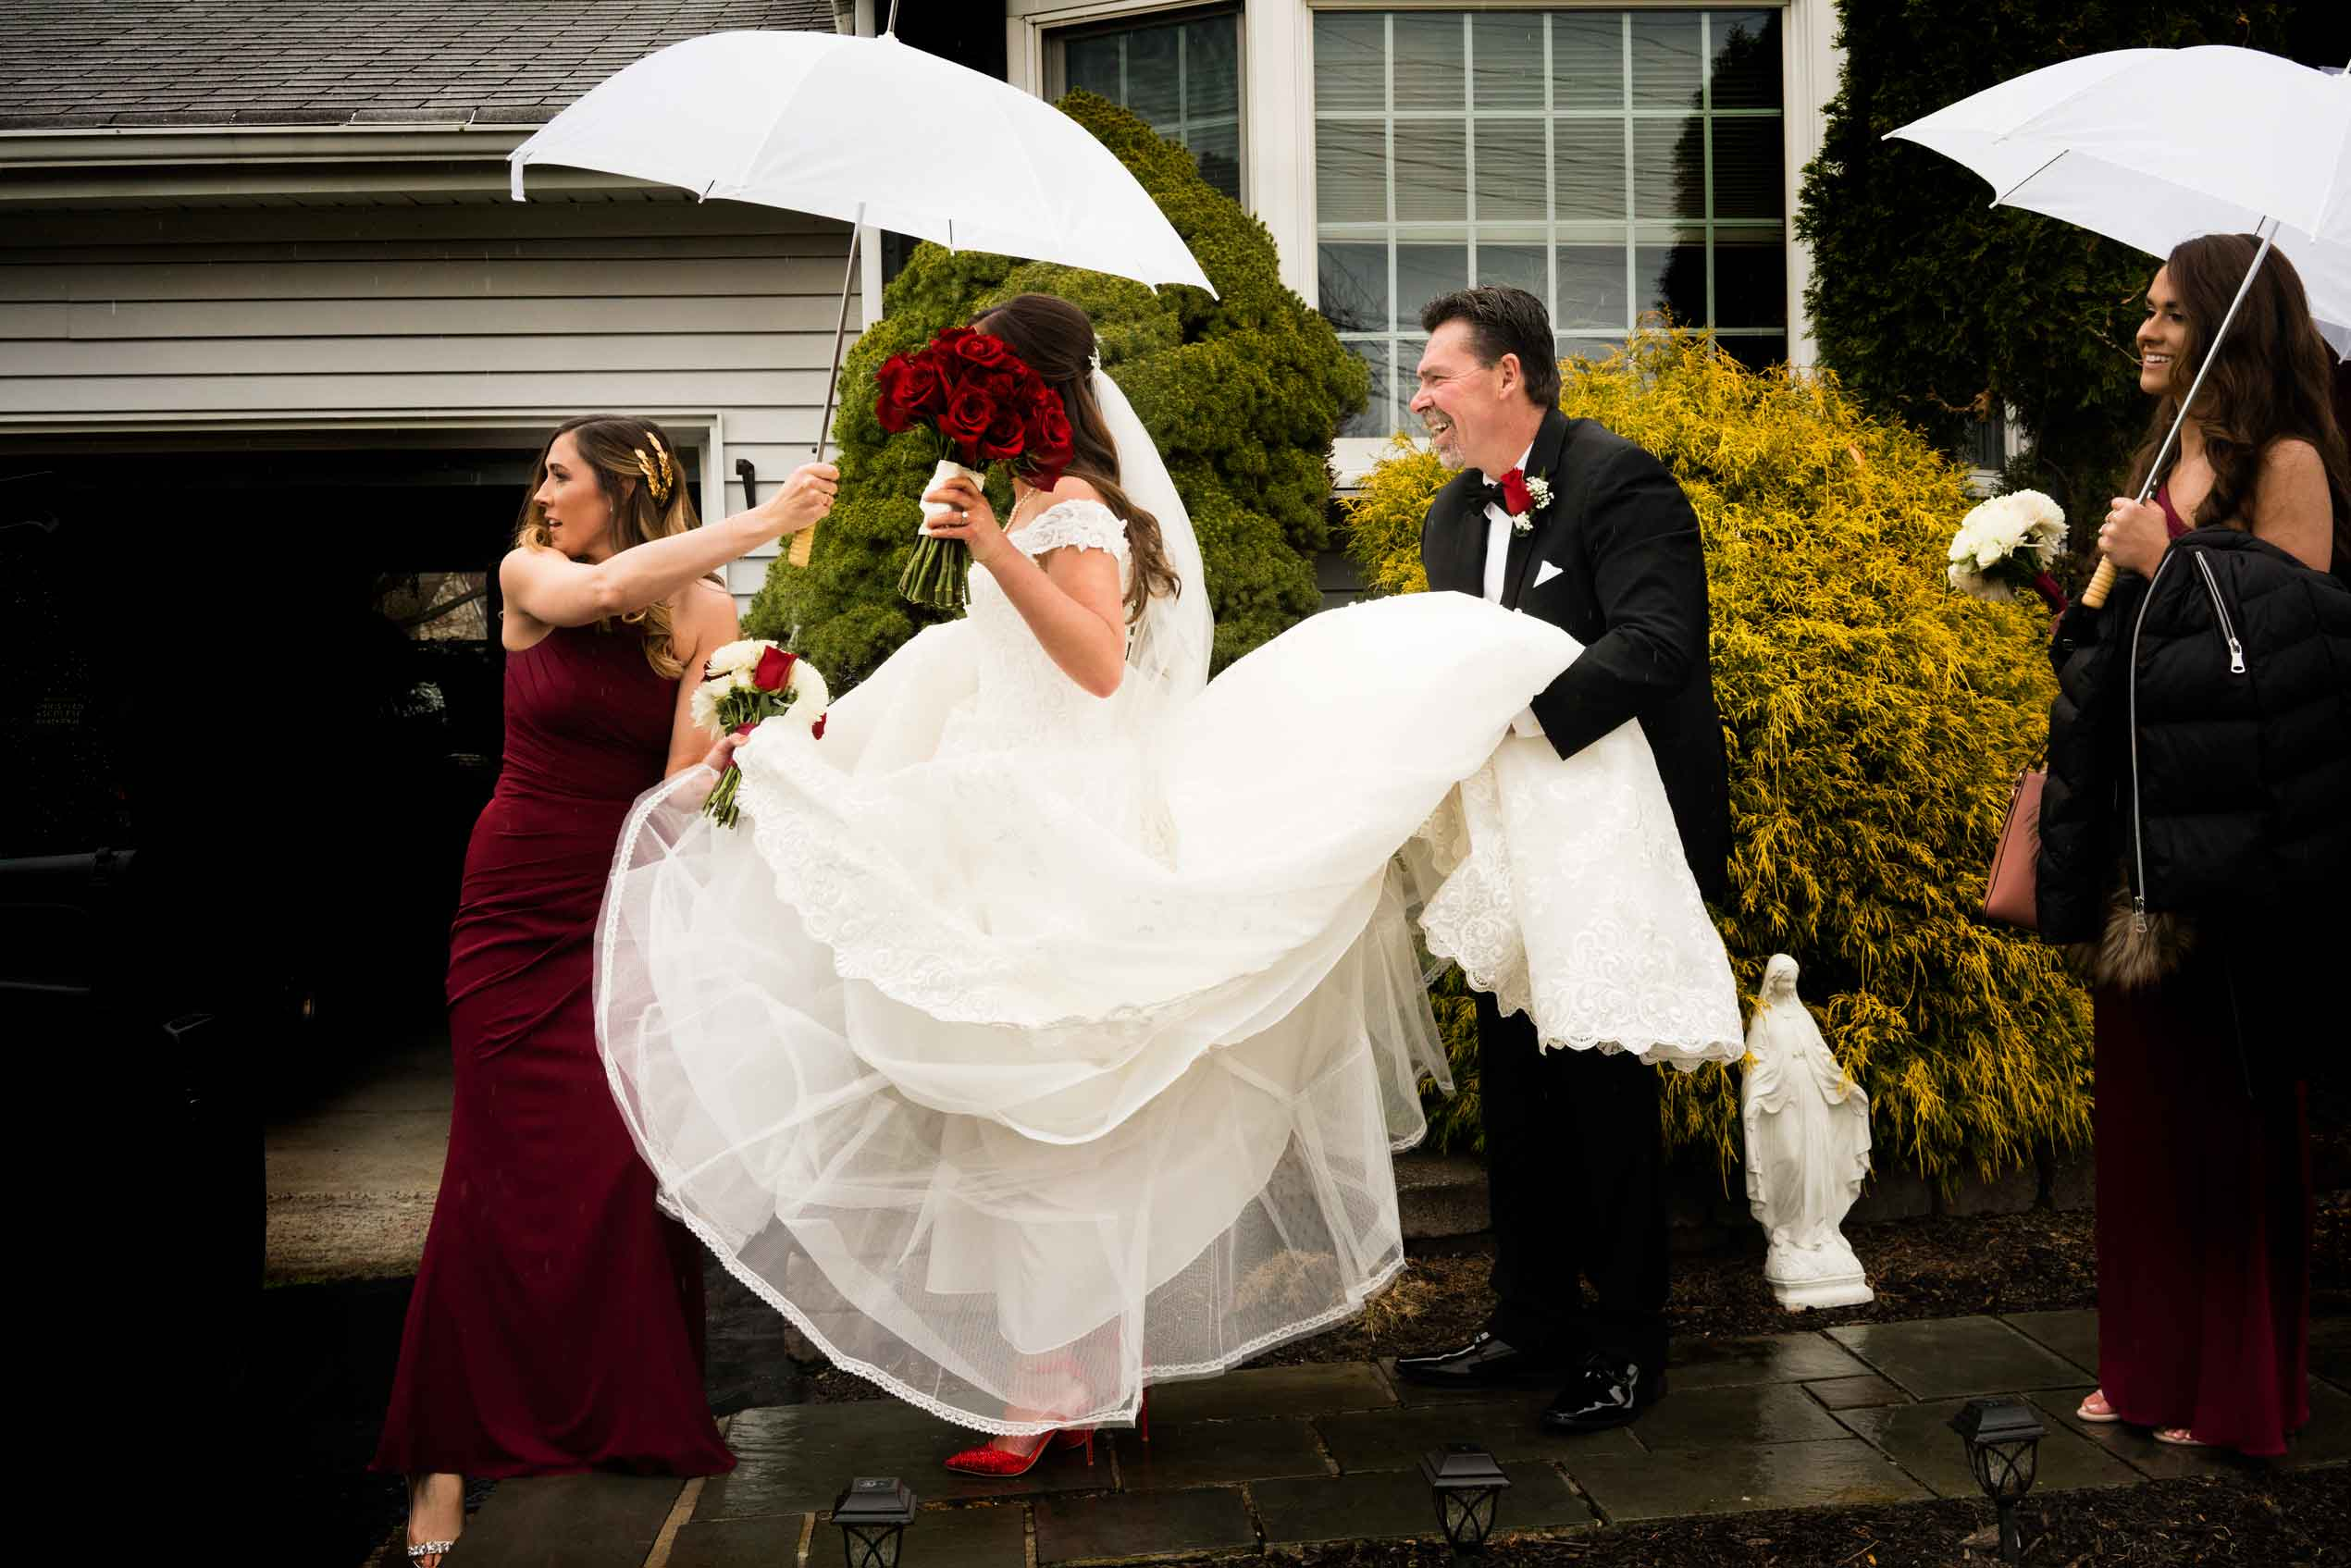 Escorting bride through the rain - photo by MD photo films